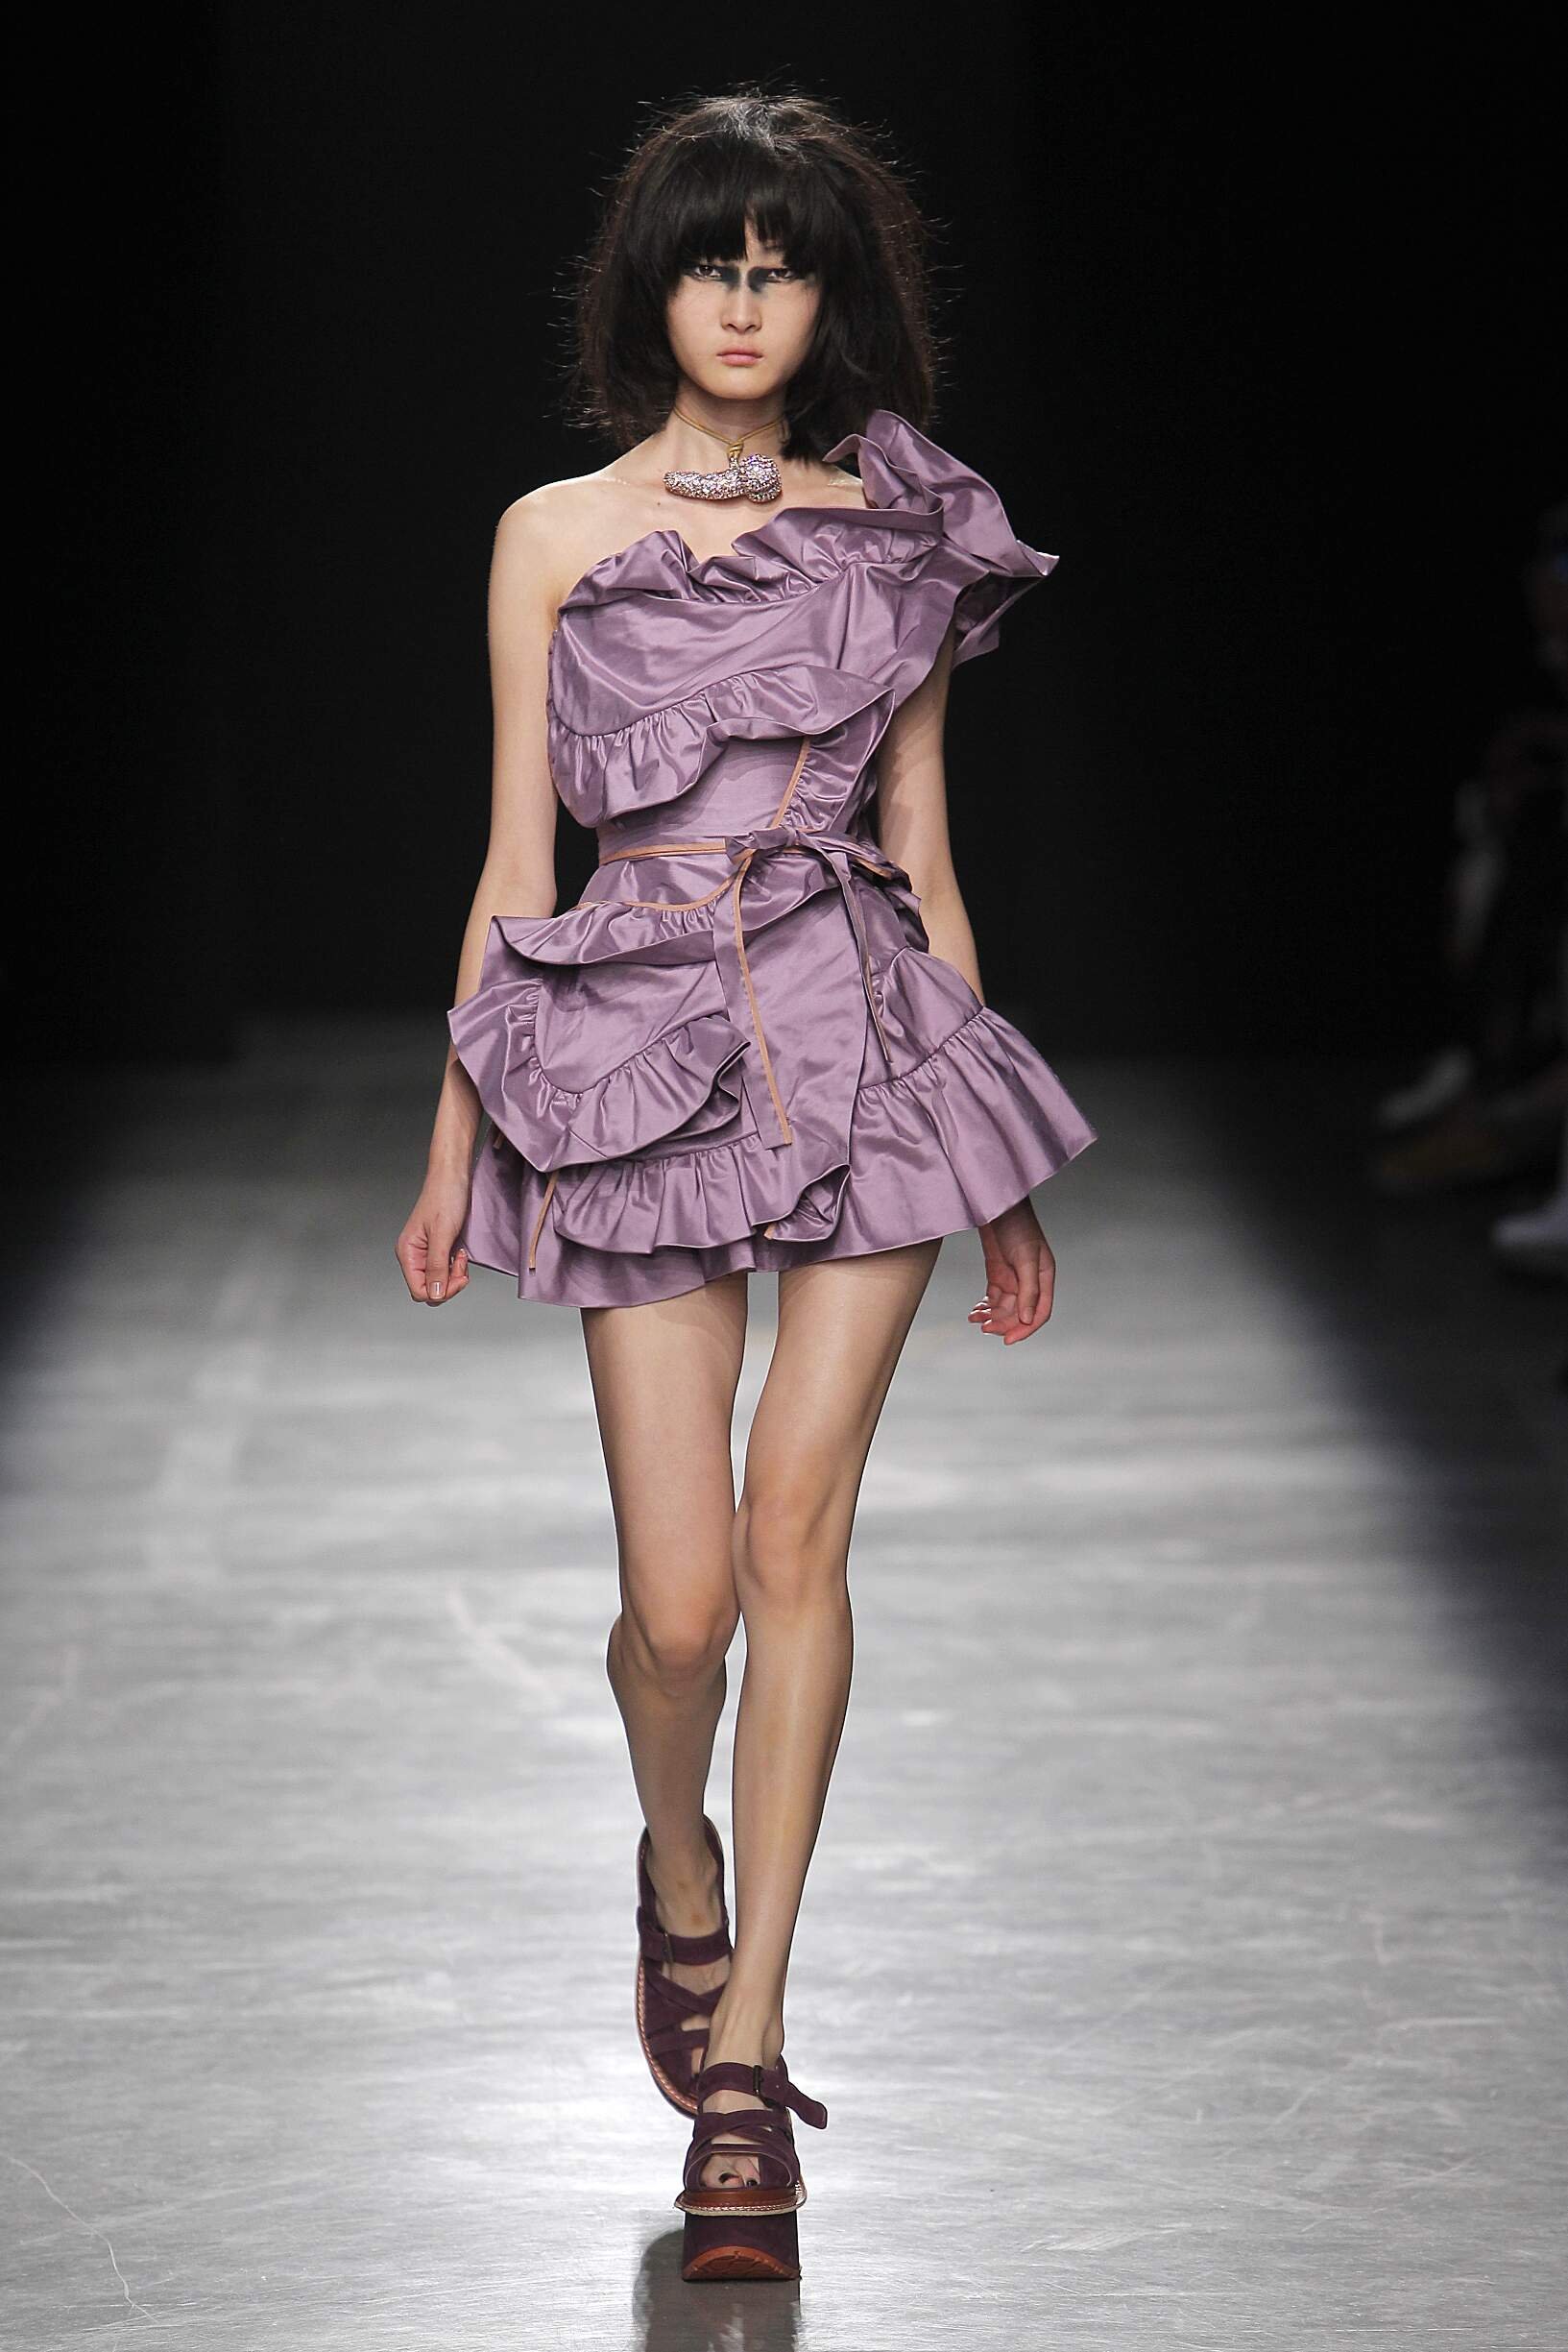 Andreas Kronthaler for Vivienne Westwood Fashion Show